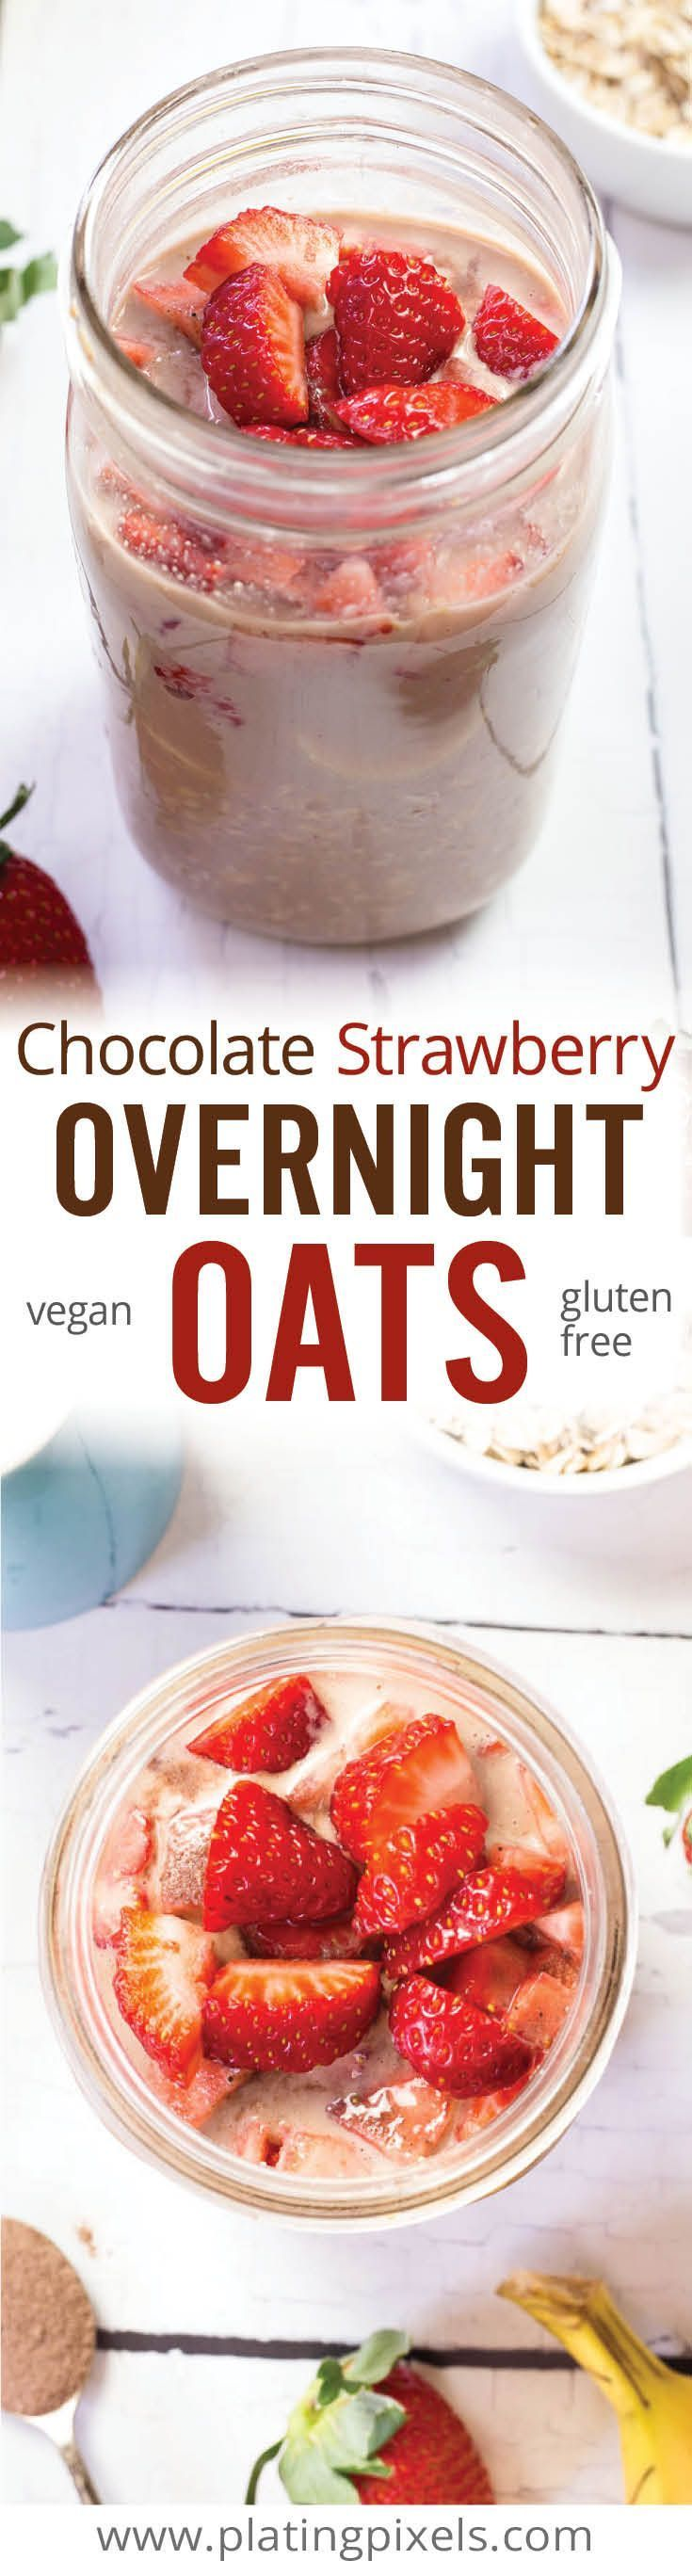 Delicious healthy vegan gluten free breakfast. Chocolate Strawberry Overnight Oats by Plating Pixels. Nutritious breakfast that tastes like dessert. Oats, almond milk, chocolate powder, peanut butter, strawberry, and banana. - www.platingpixels.com